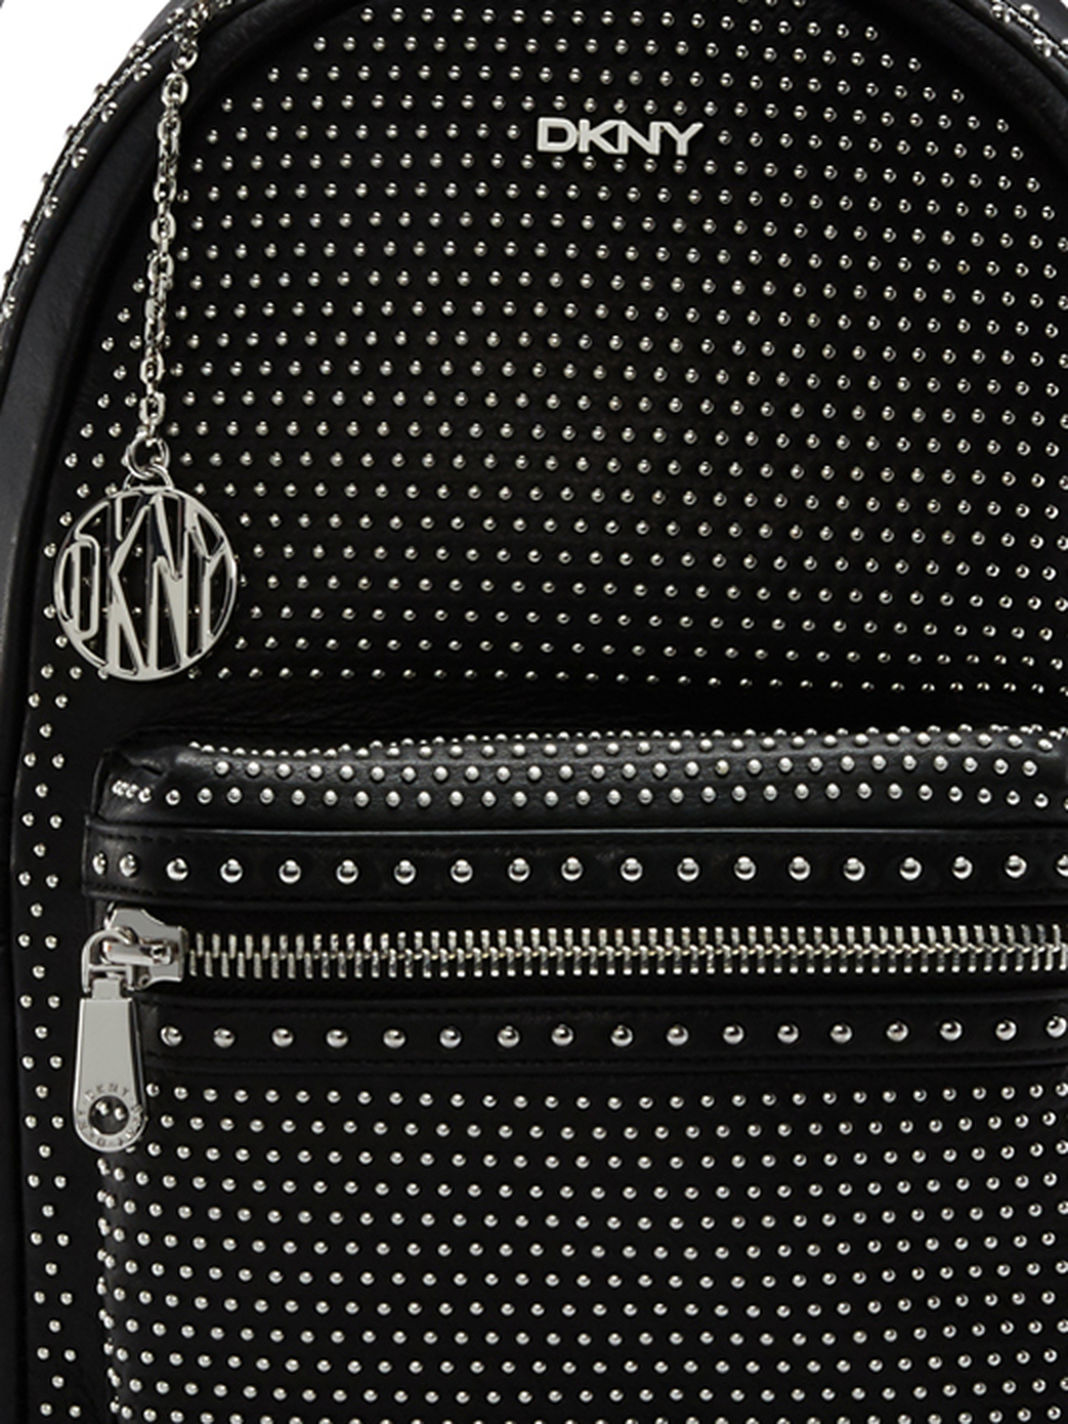 Dkny Studded Leather Backpack in Black | Lyst